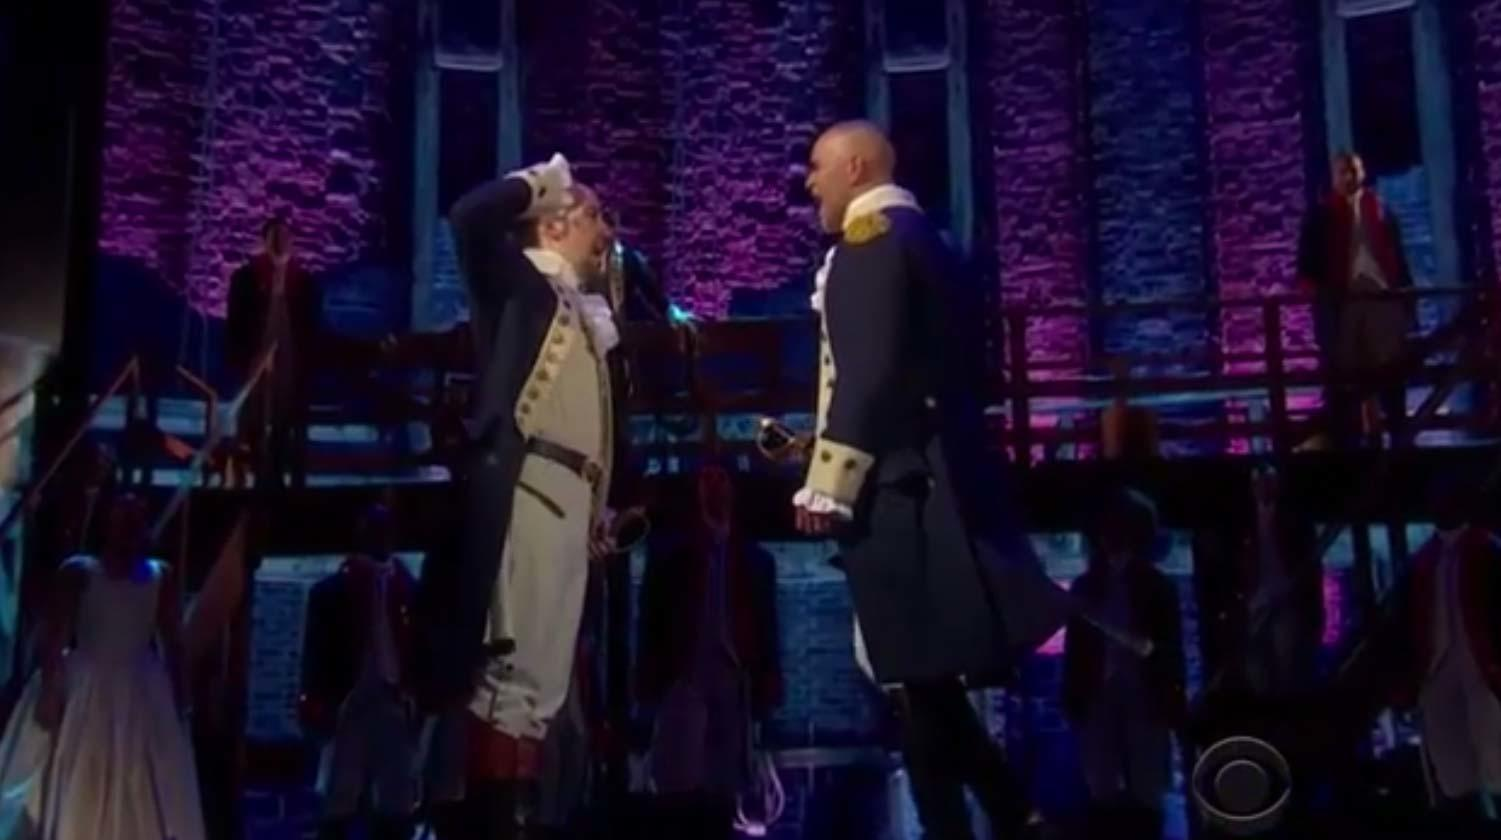 Watch Replay: Amazing 'Hamilton' Performance at the Tony Awards